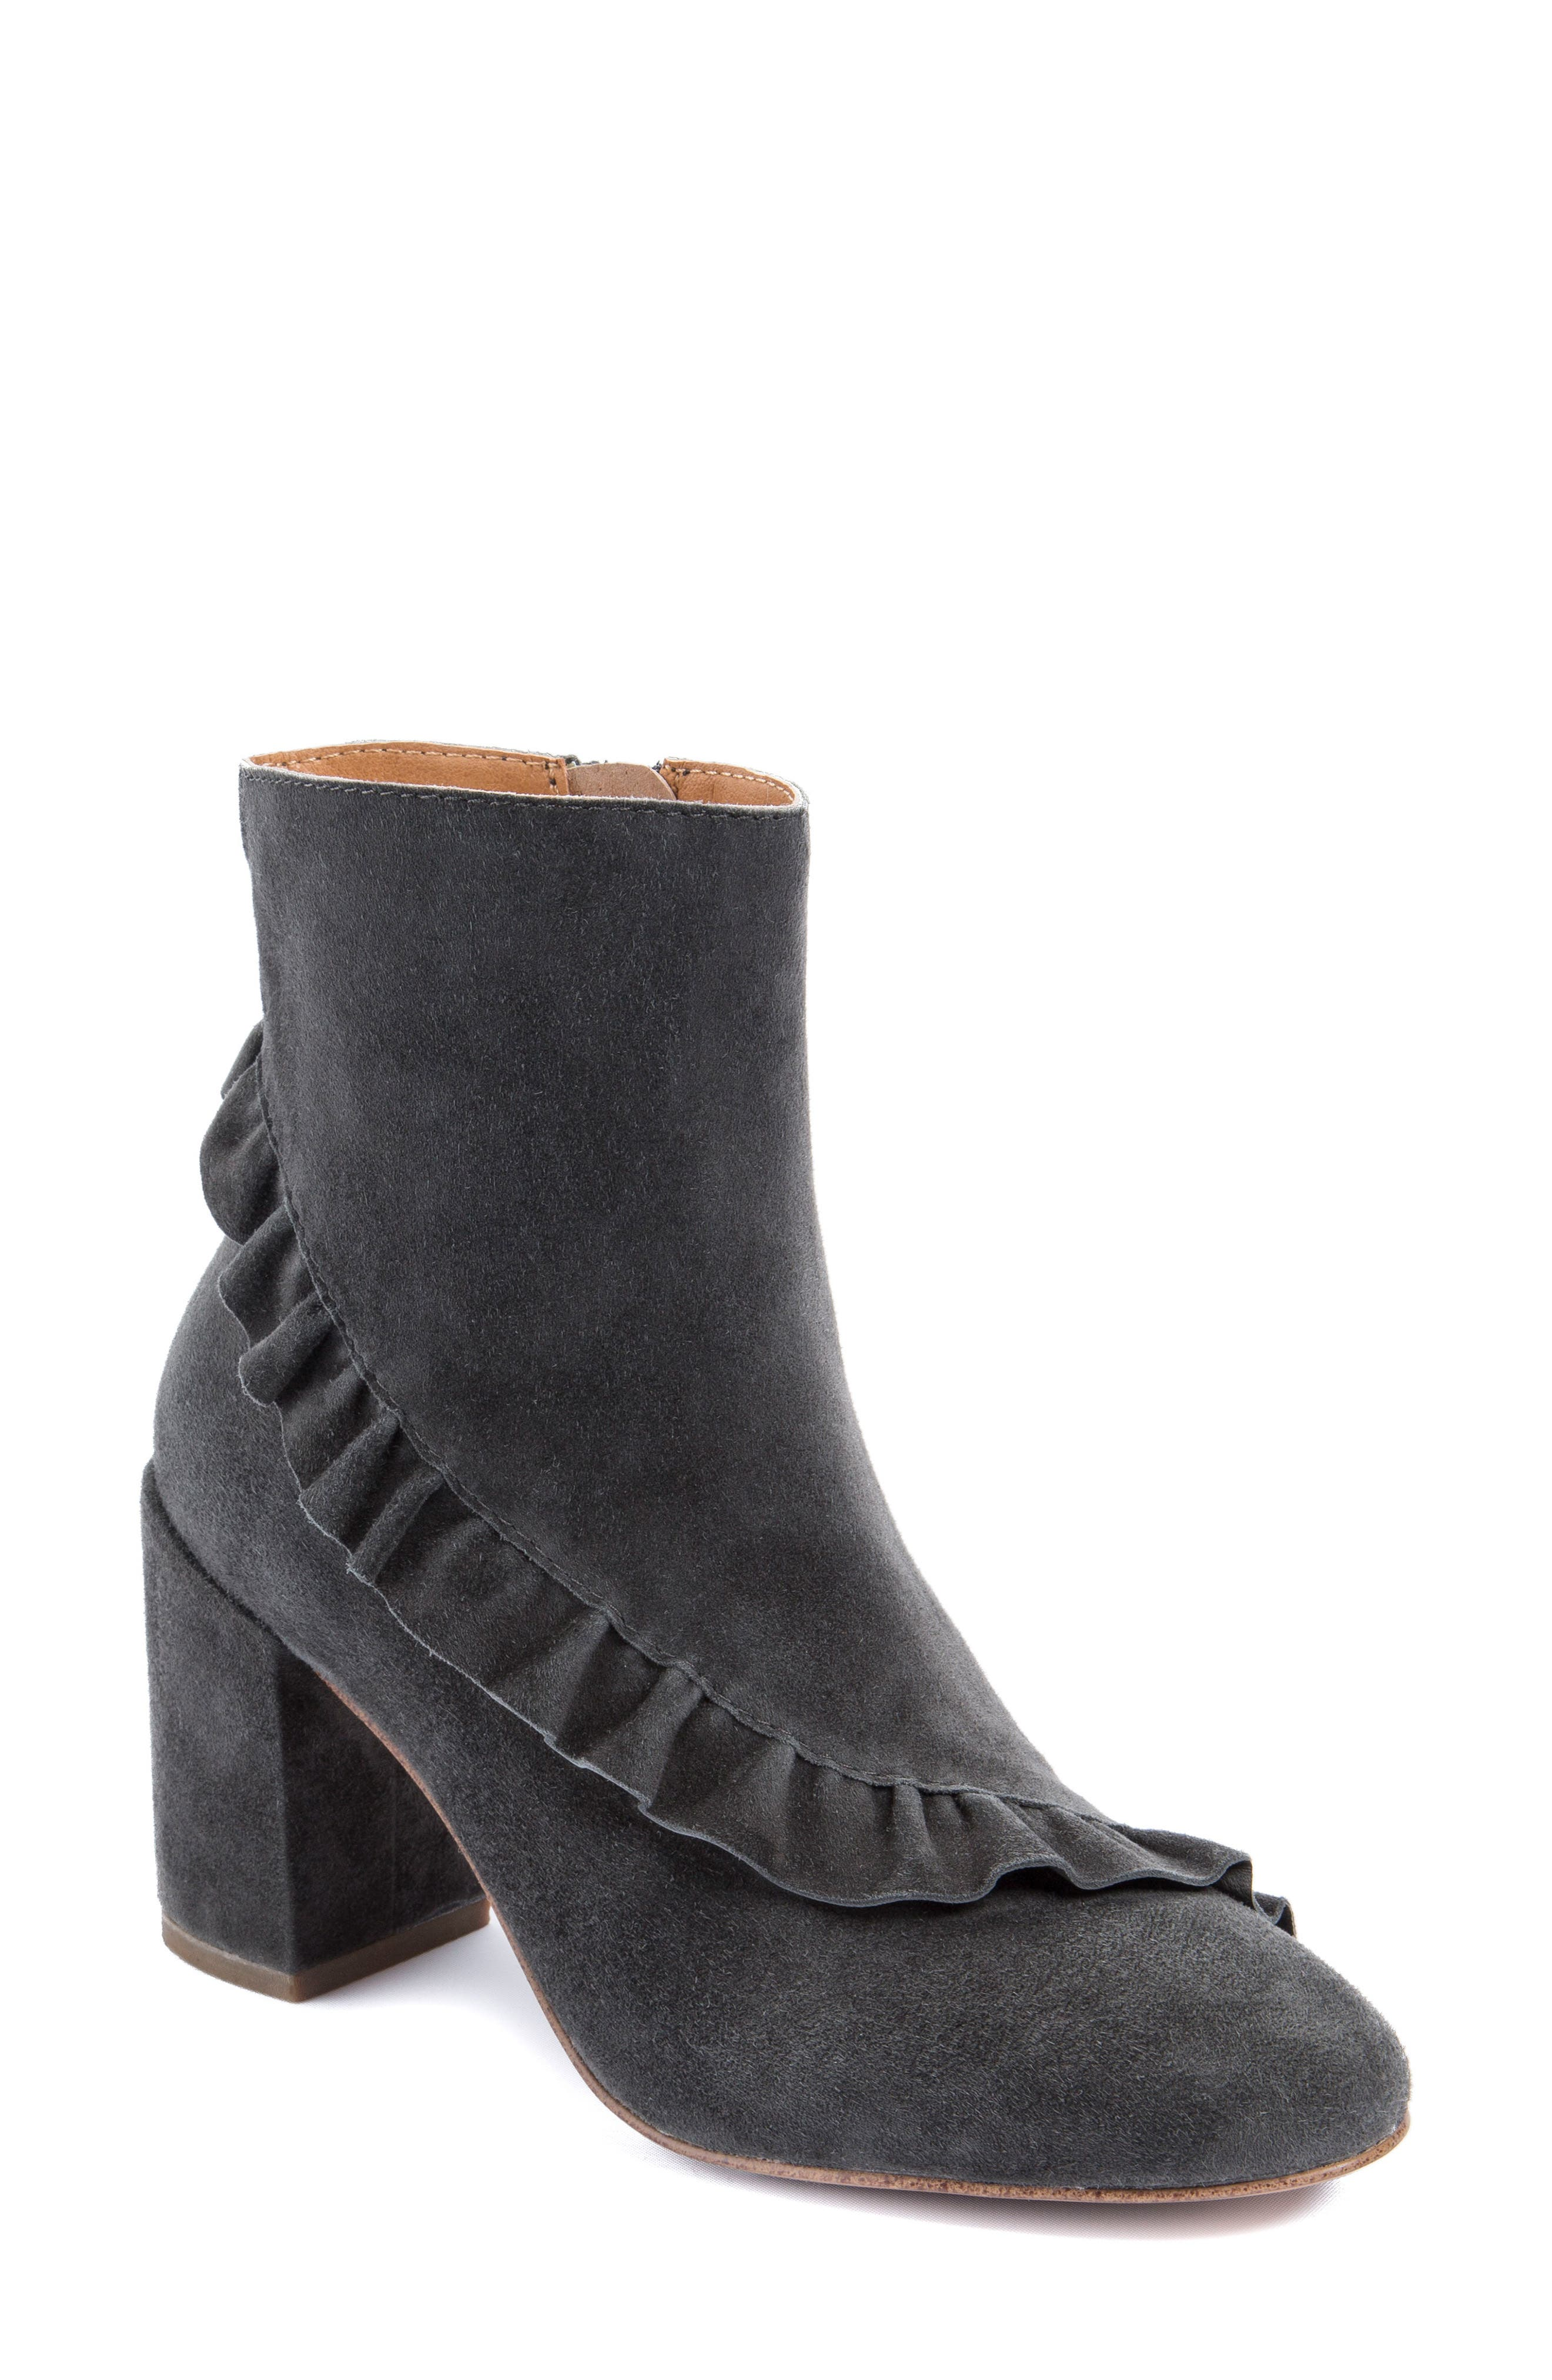 Kahlia Ruffle Bootie,                             Main thumbnail 1, color,                             Stone Suede